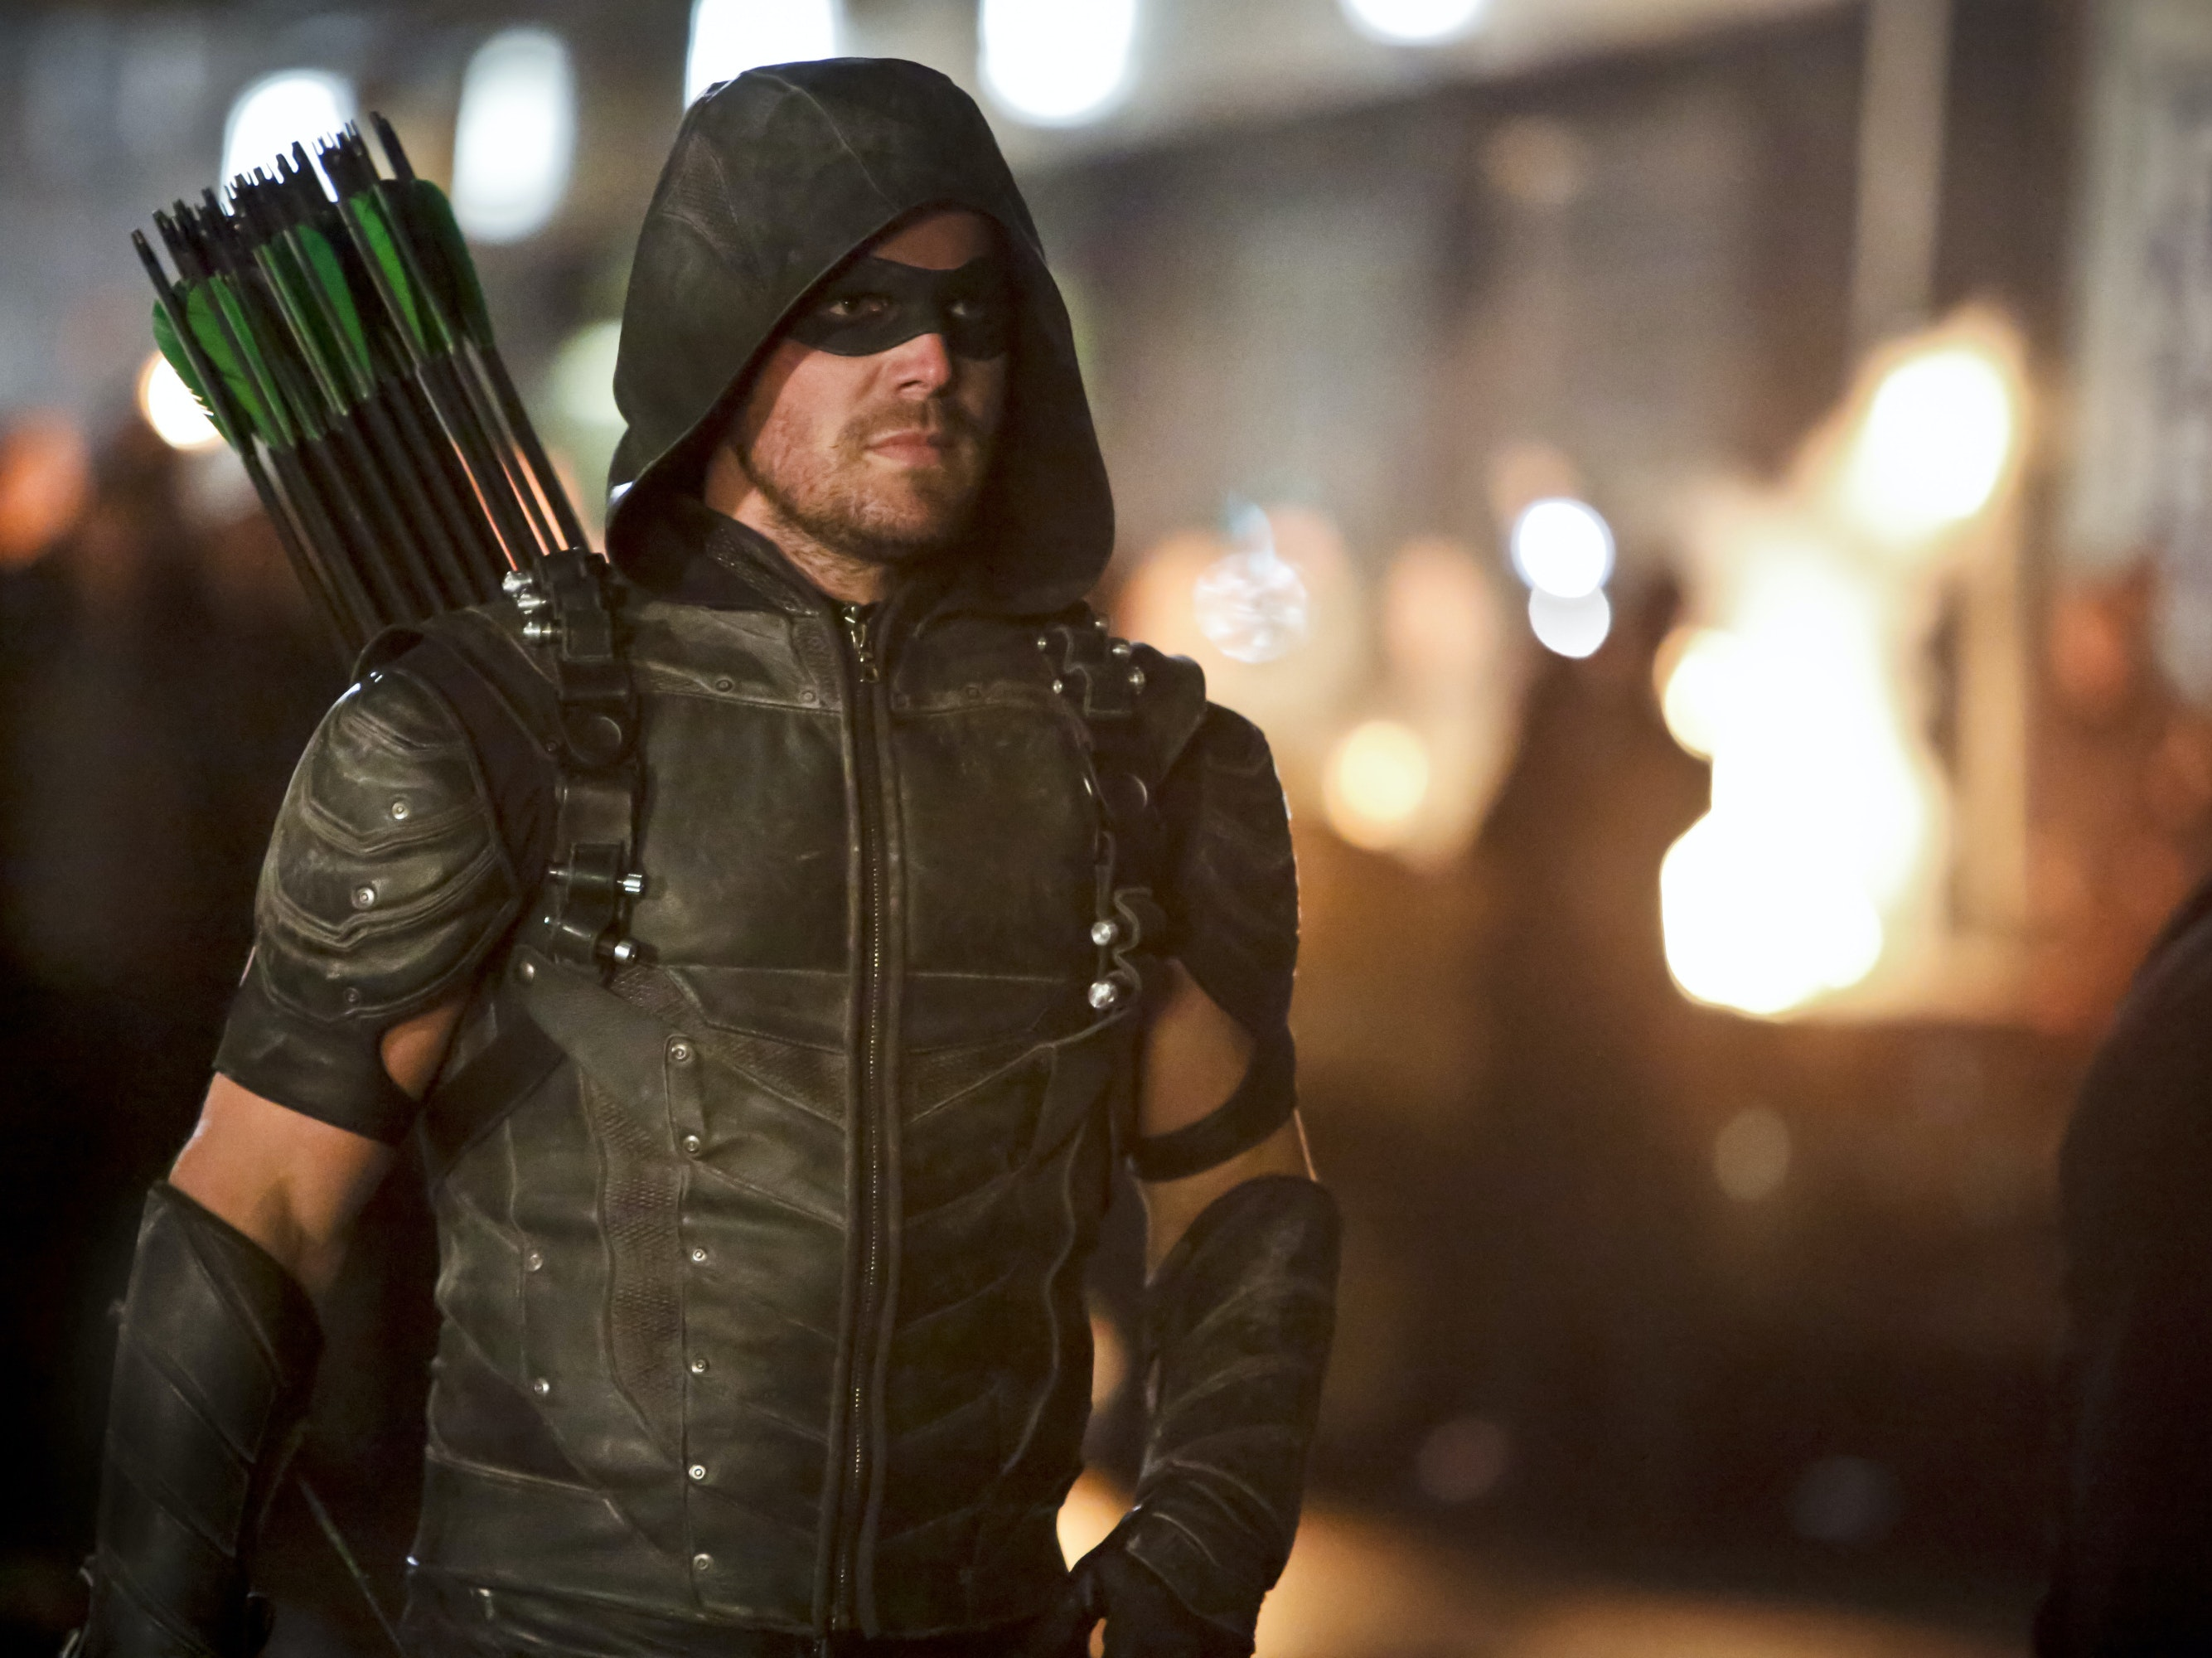 The Past Comes Back to Haunt Green Arrow in Mid Season Finale